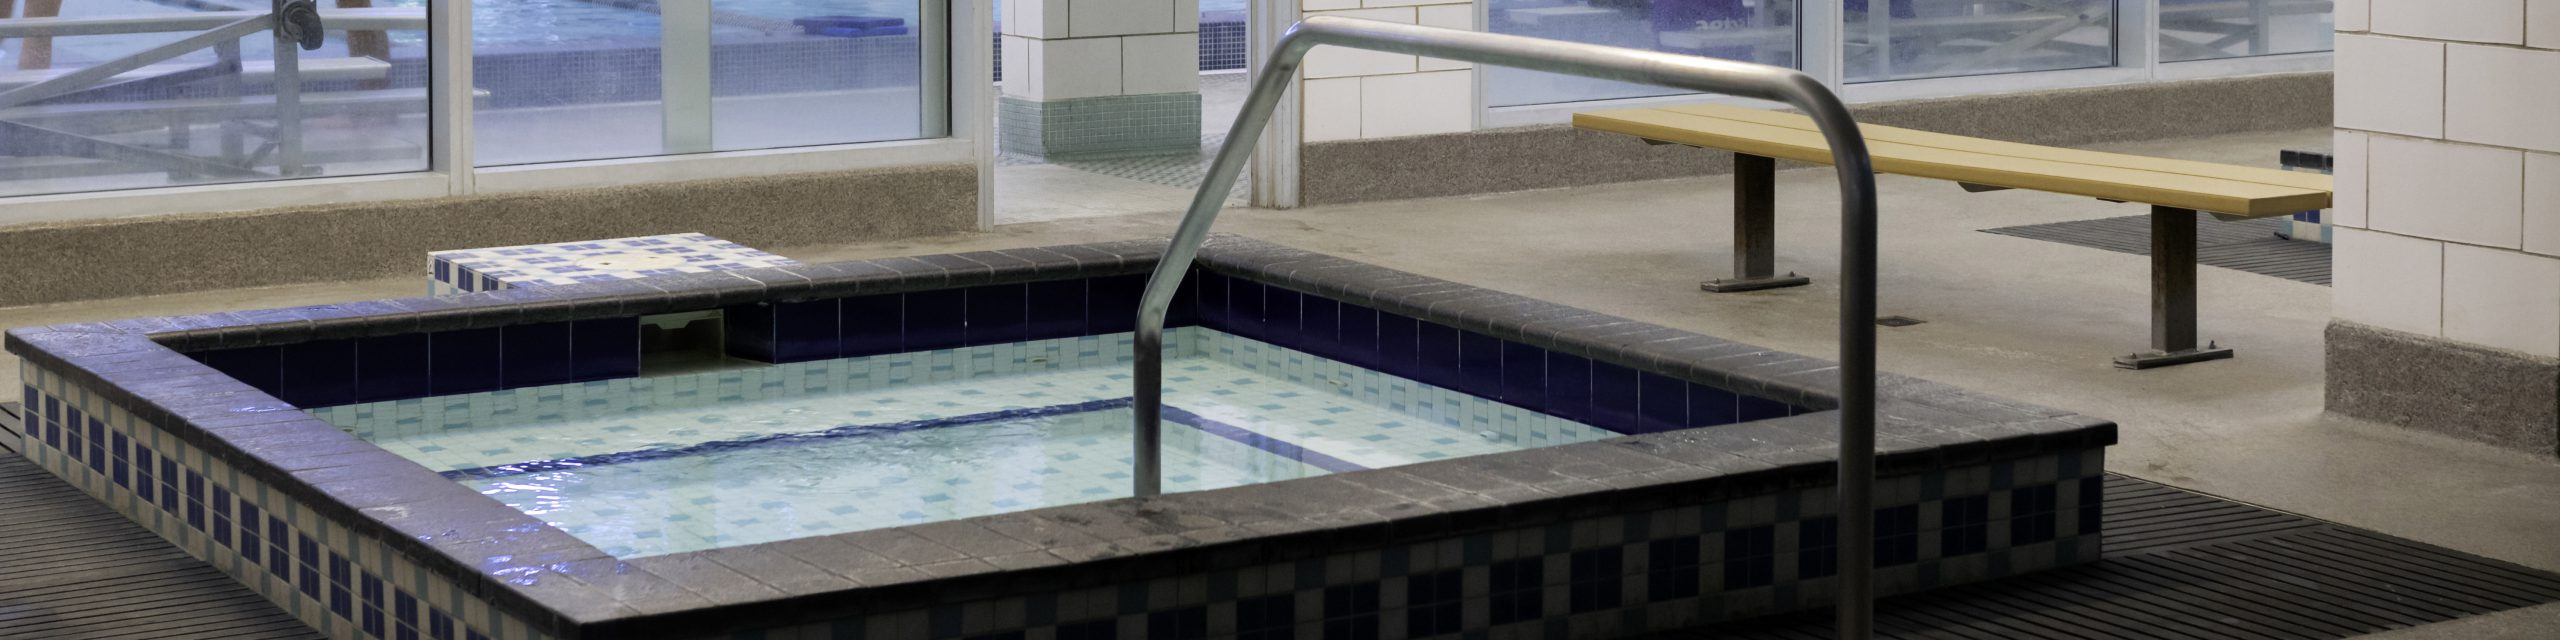 The hot tub at the Leach Center Pool